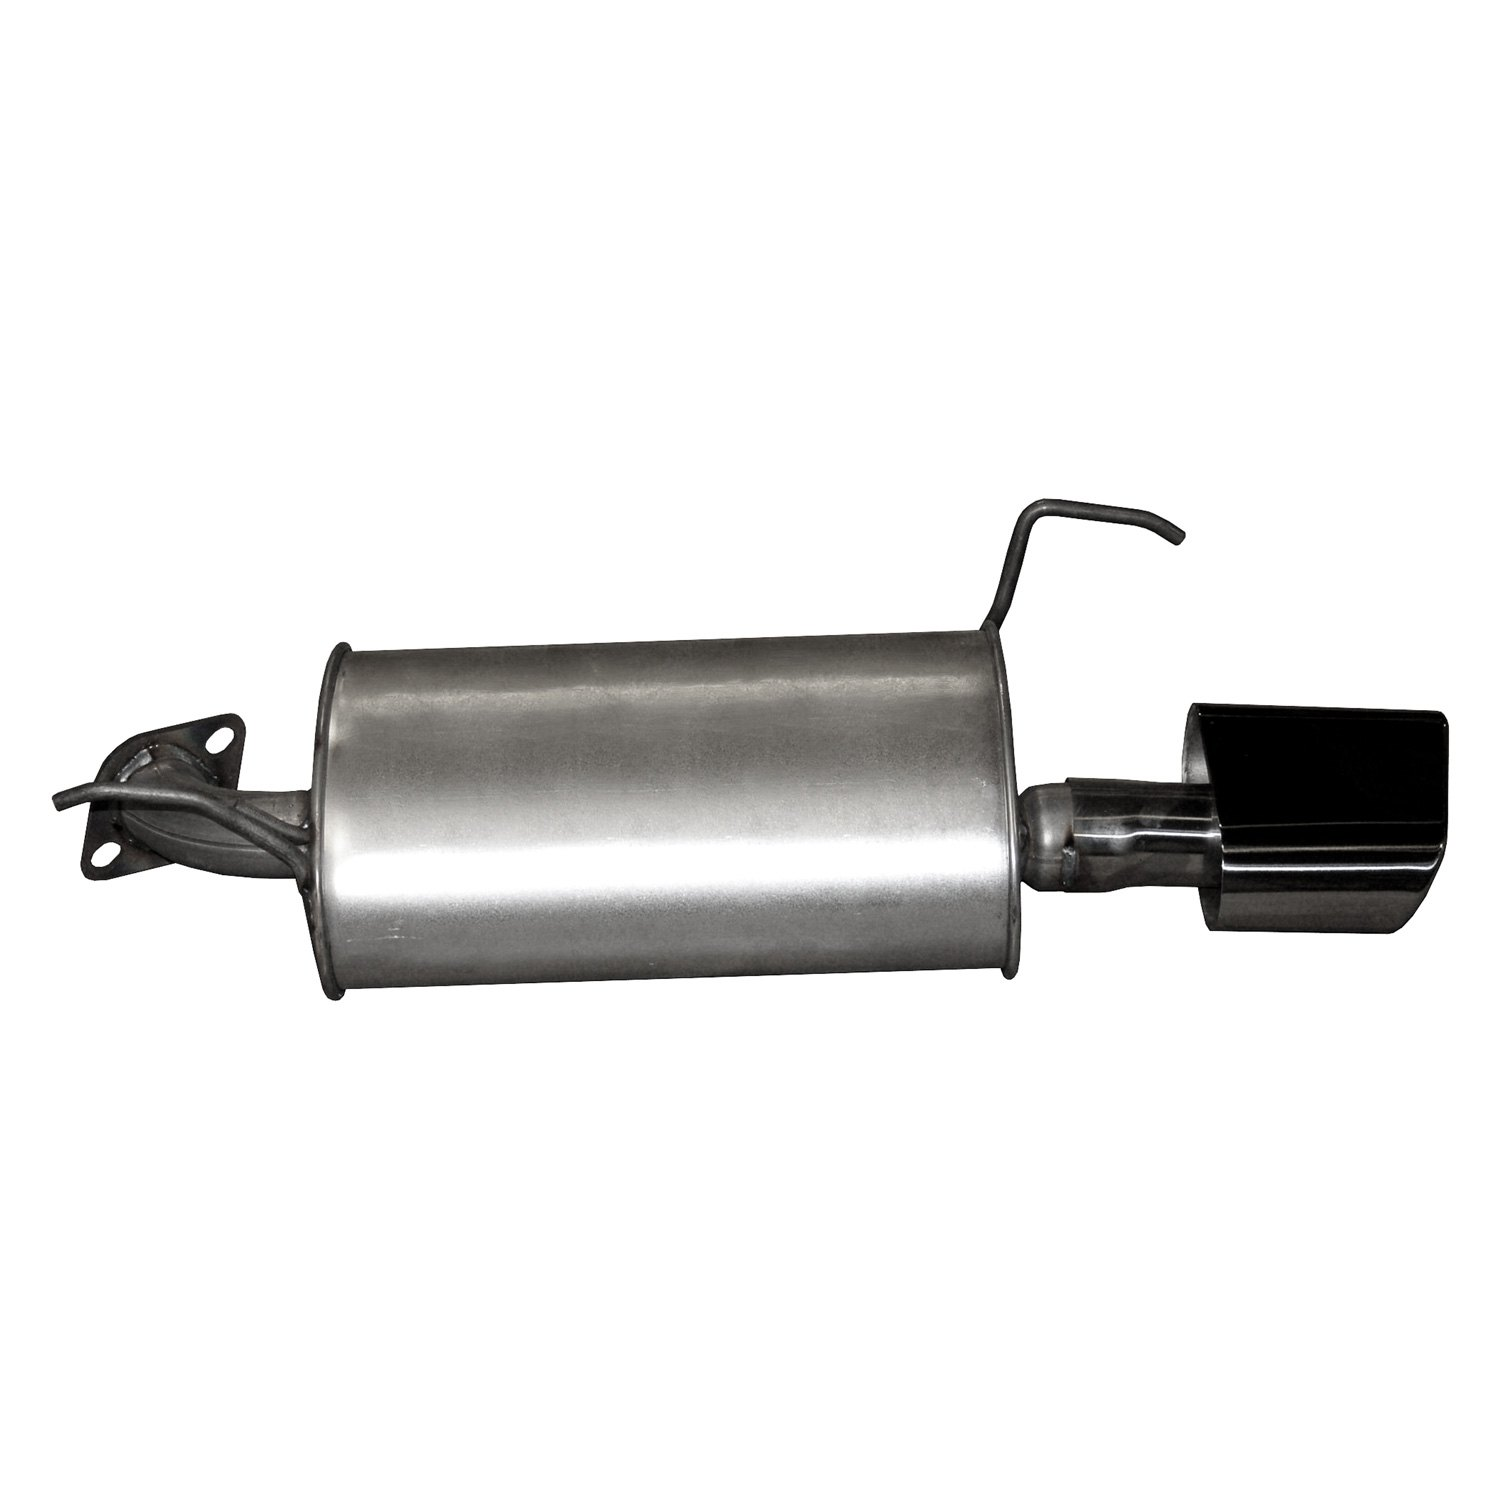 Acura MDX 2004 Replacement Exhaust Kit